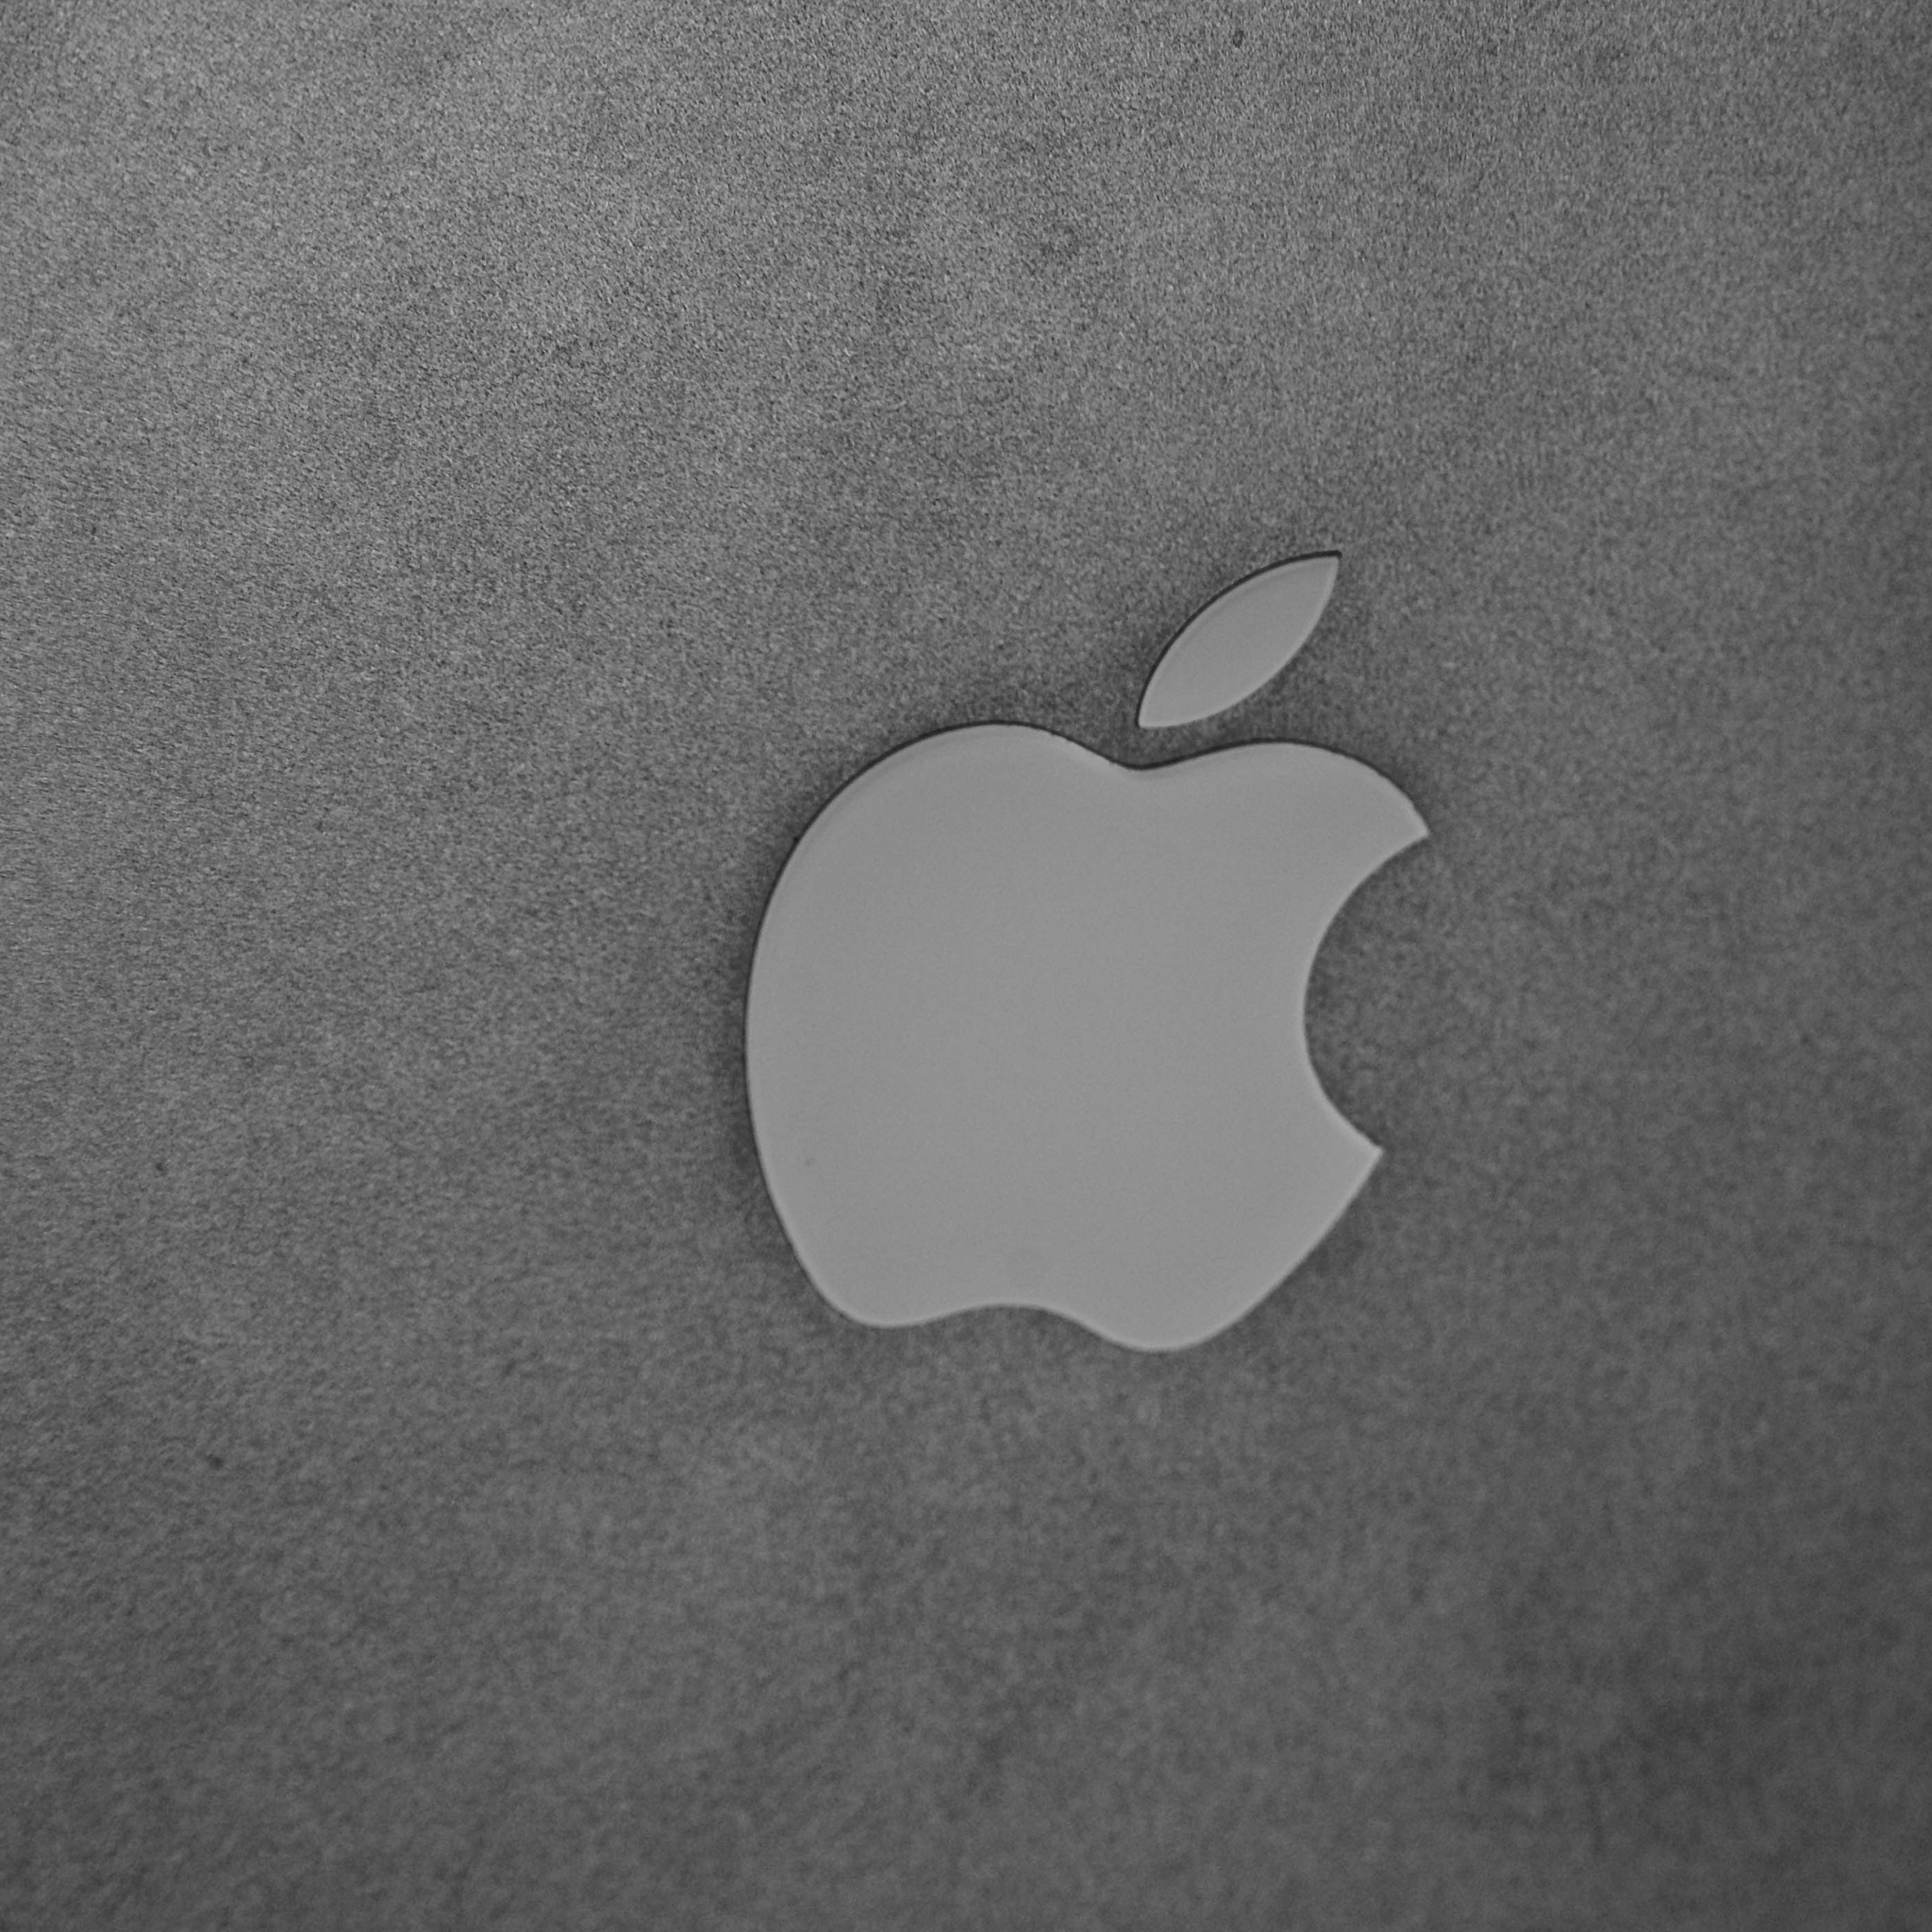 Apple Grey 3Wallpapers iPad Apple Grey   iPad